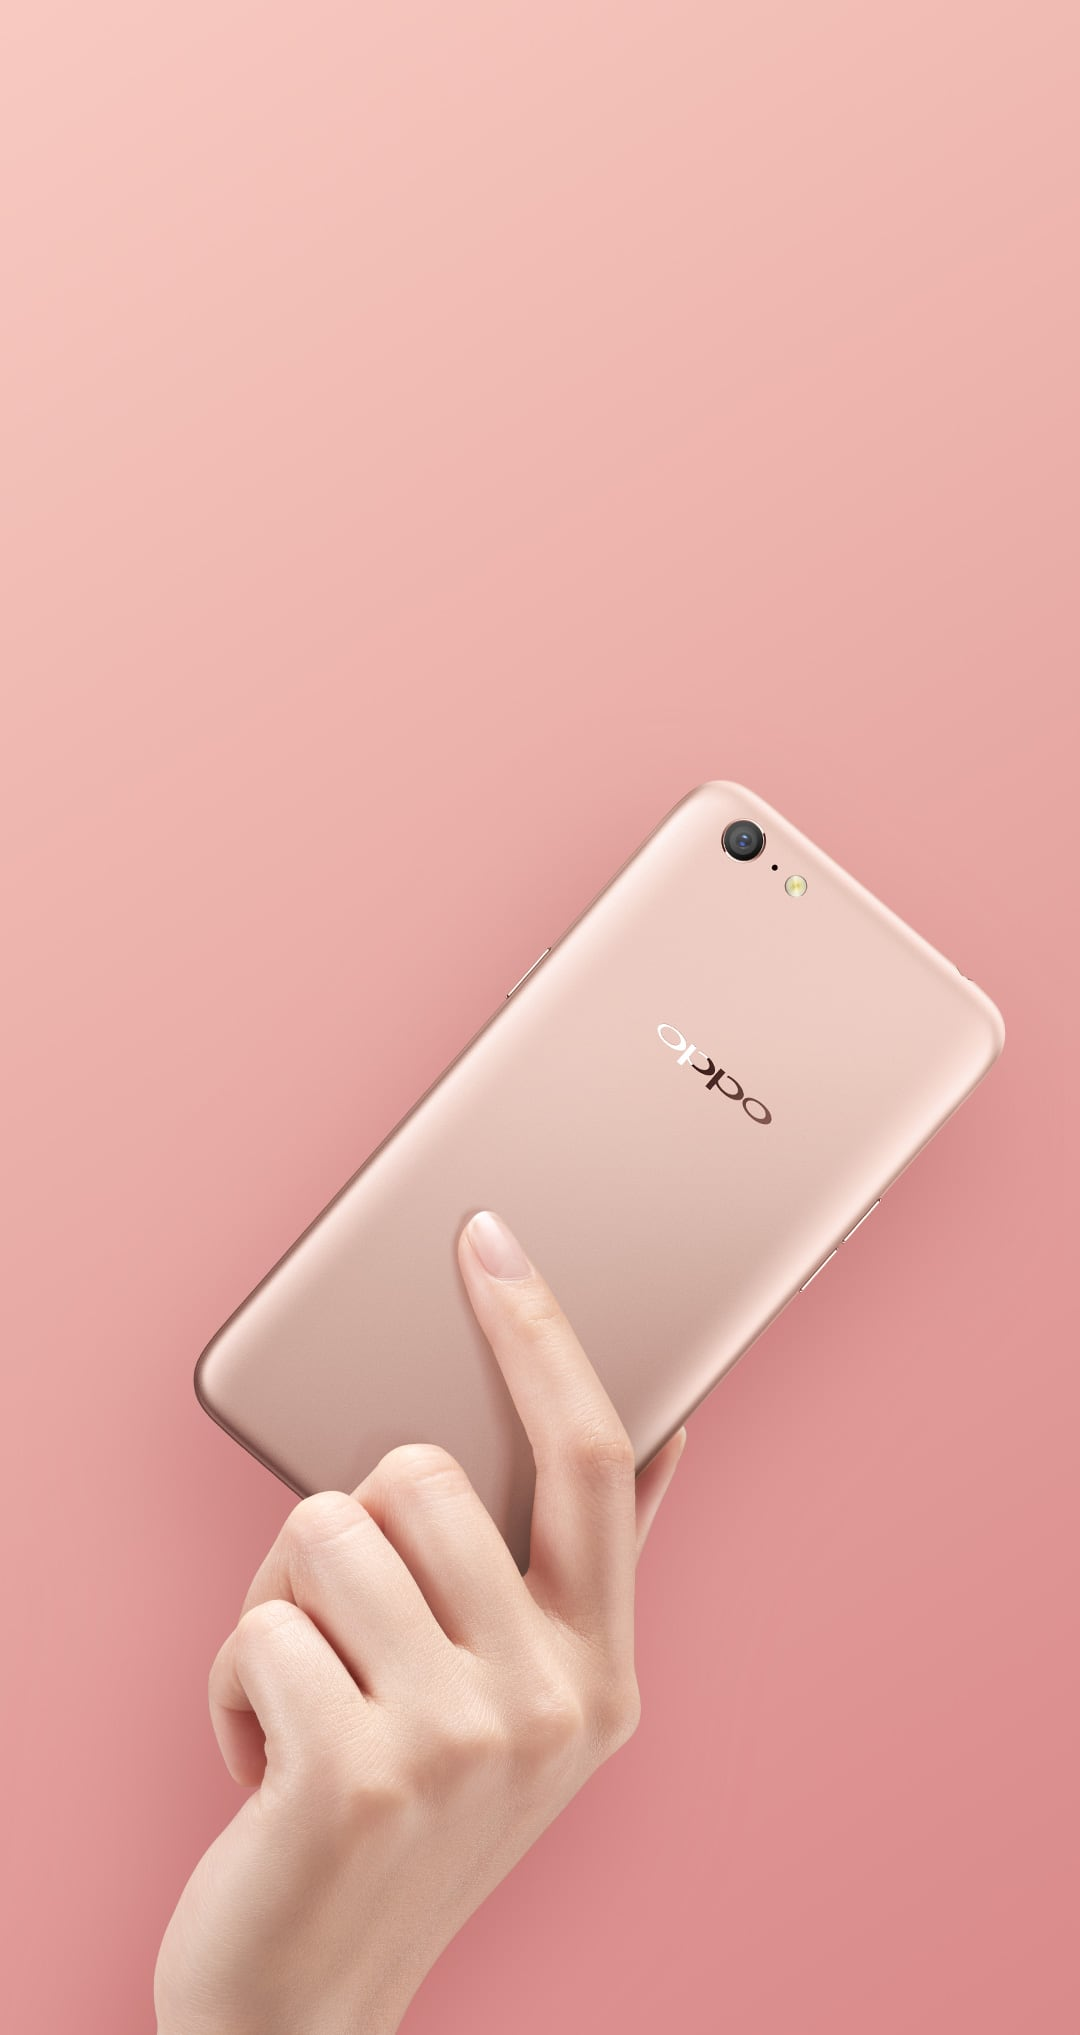 A71(2018) - OPPO India